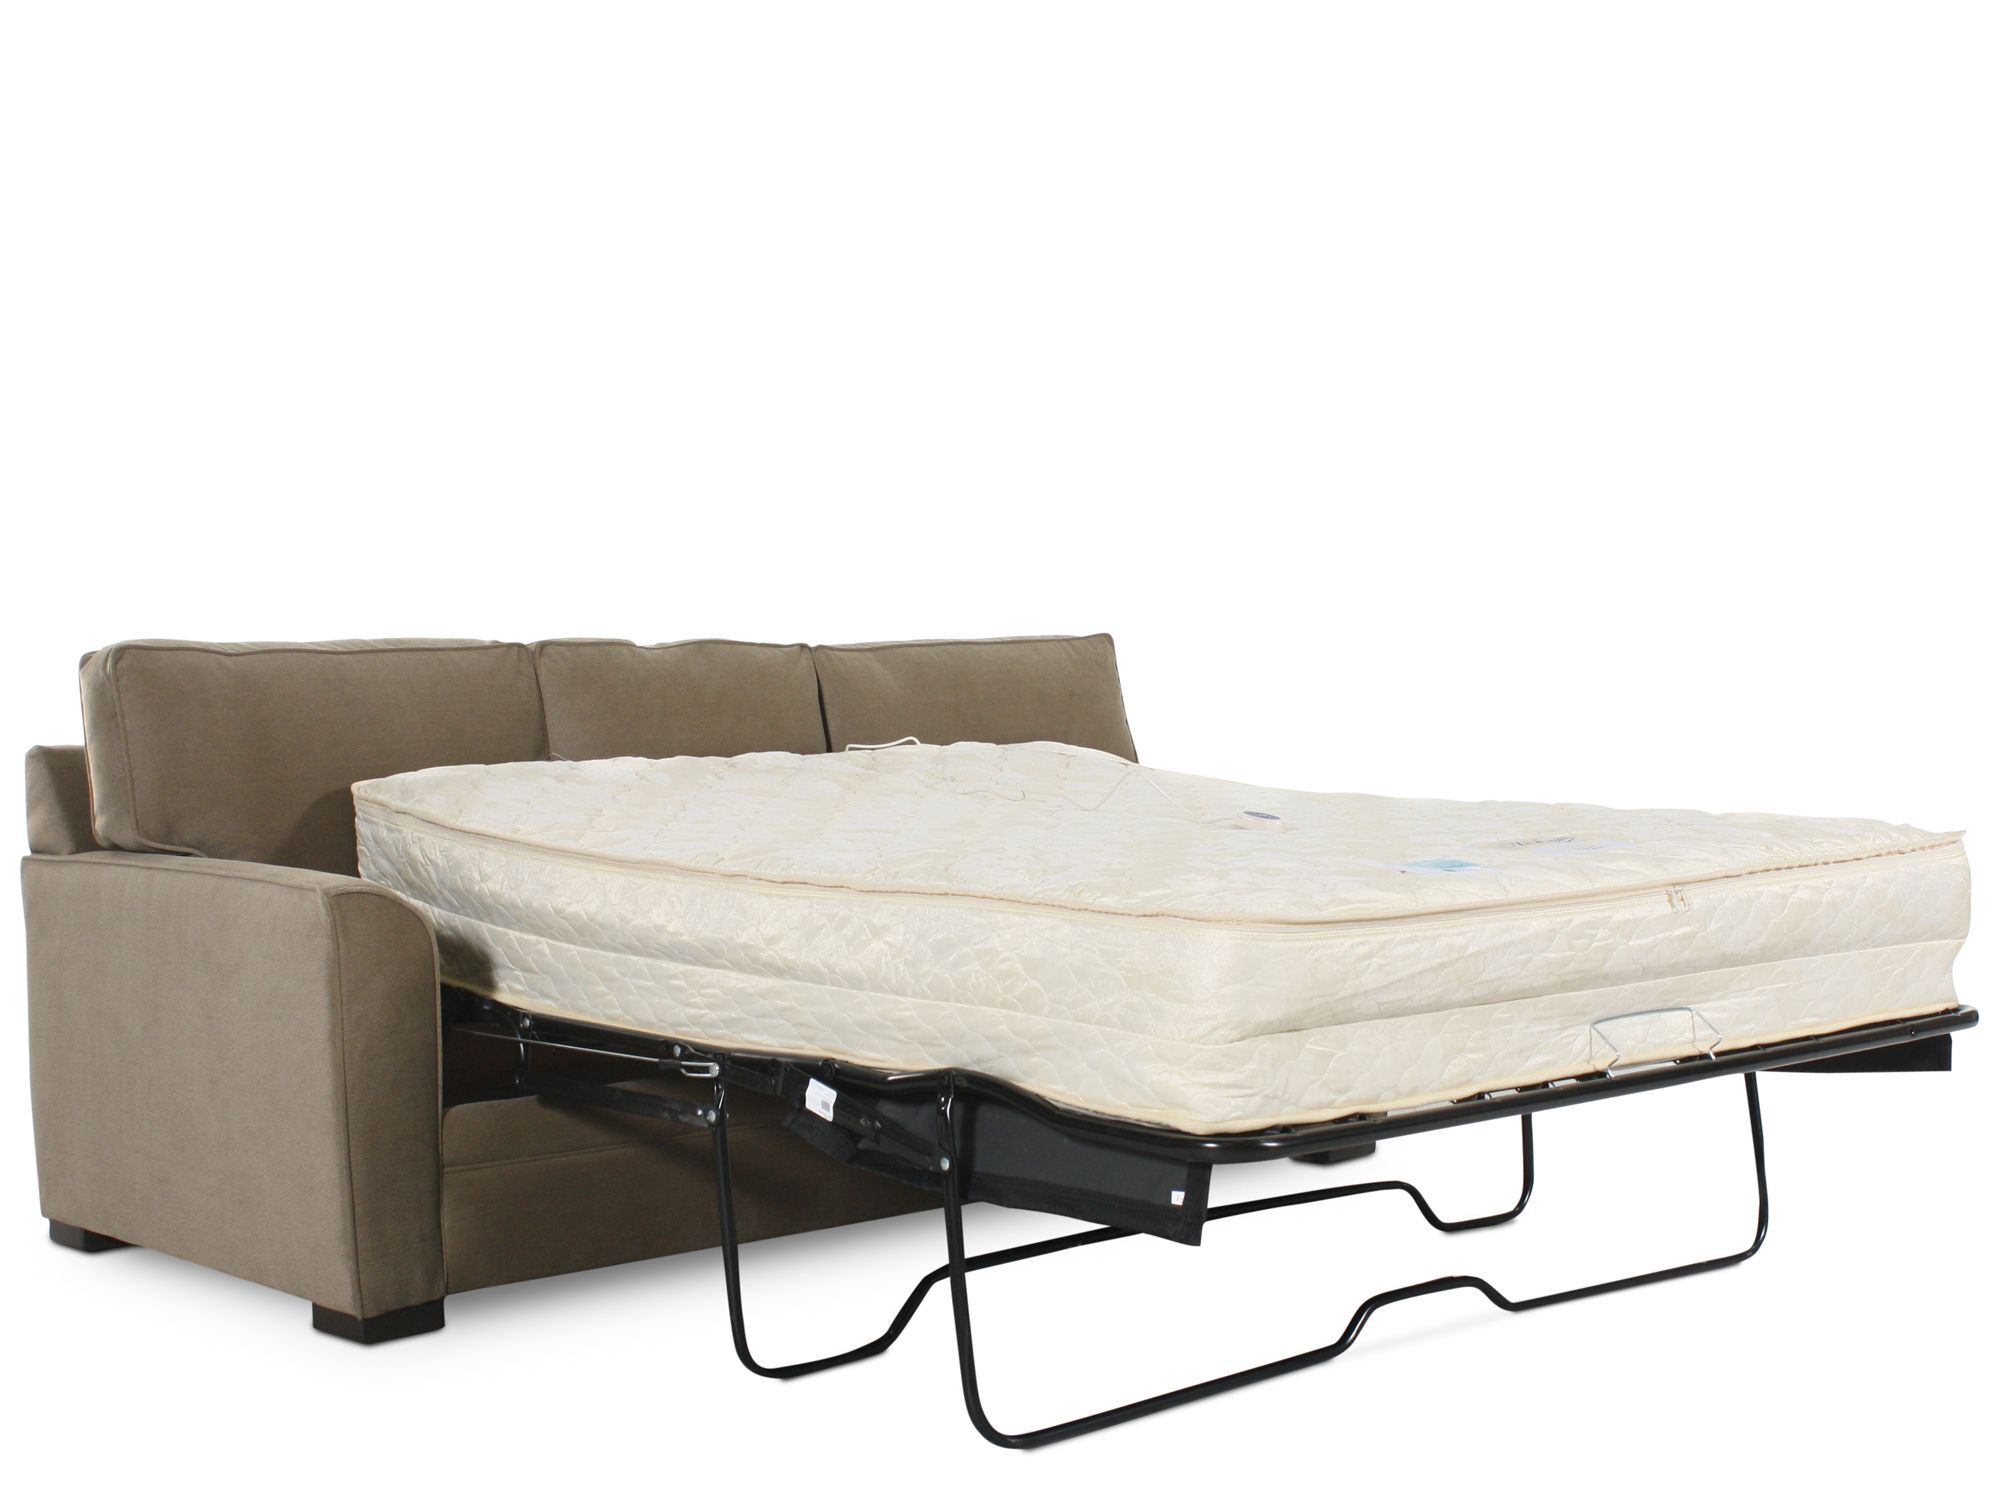 jonathan louis sofa bed leather texture queen sleeper with air mattress